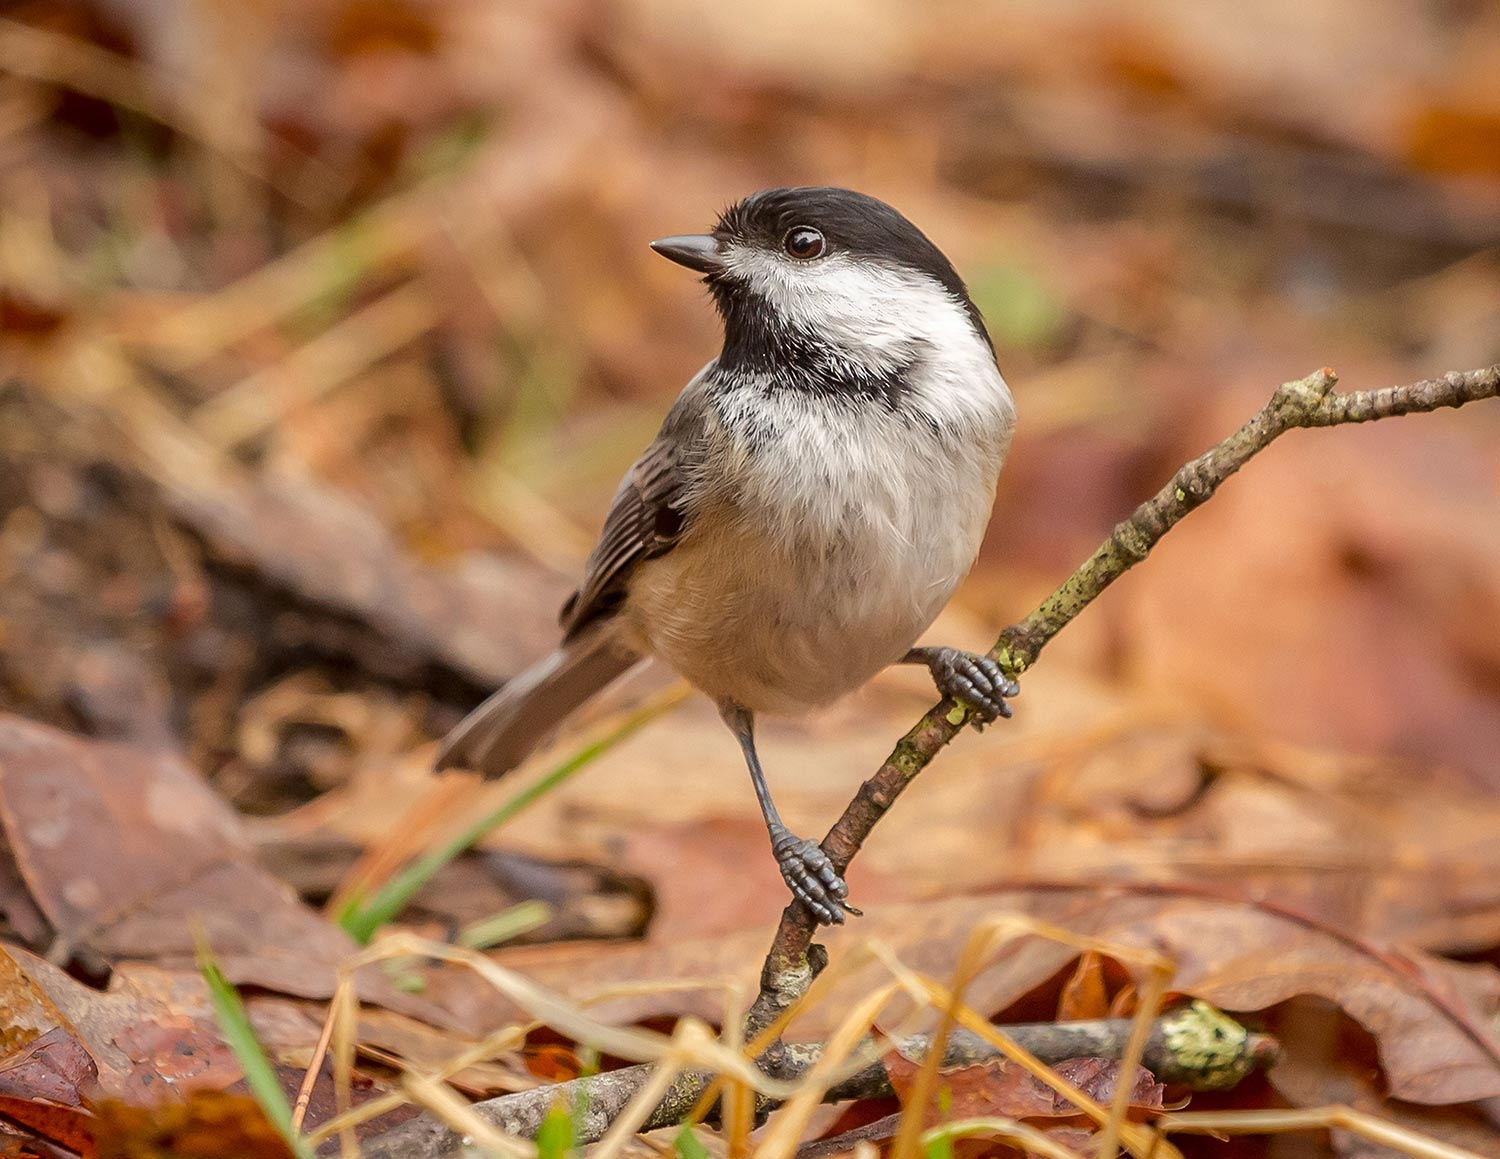 A Black-capped chickadee was kind enough to pose for me.